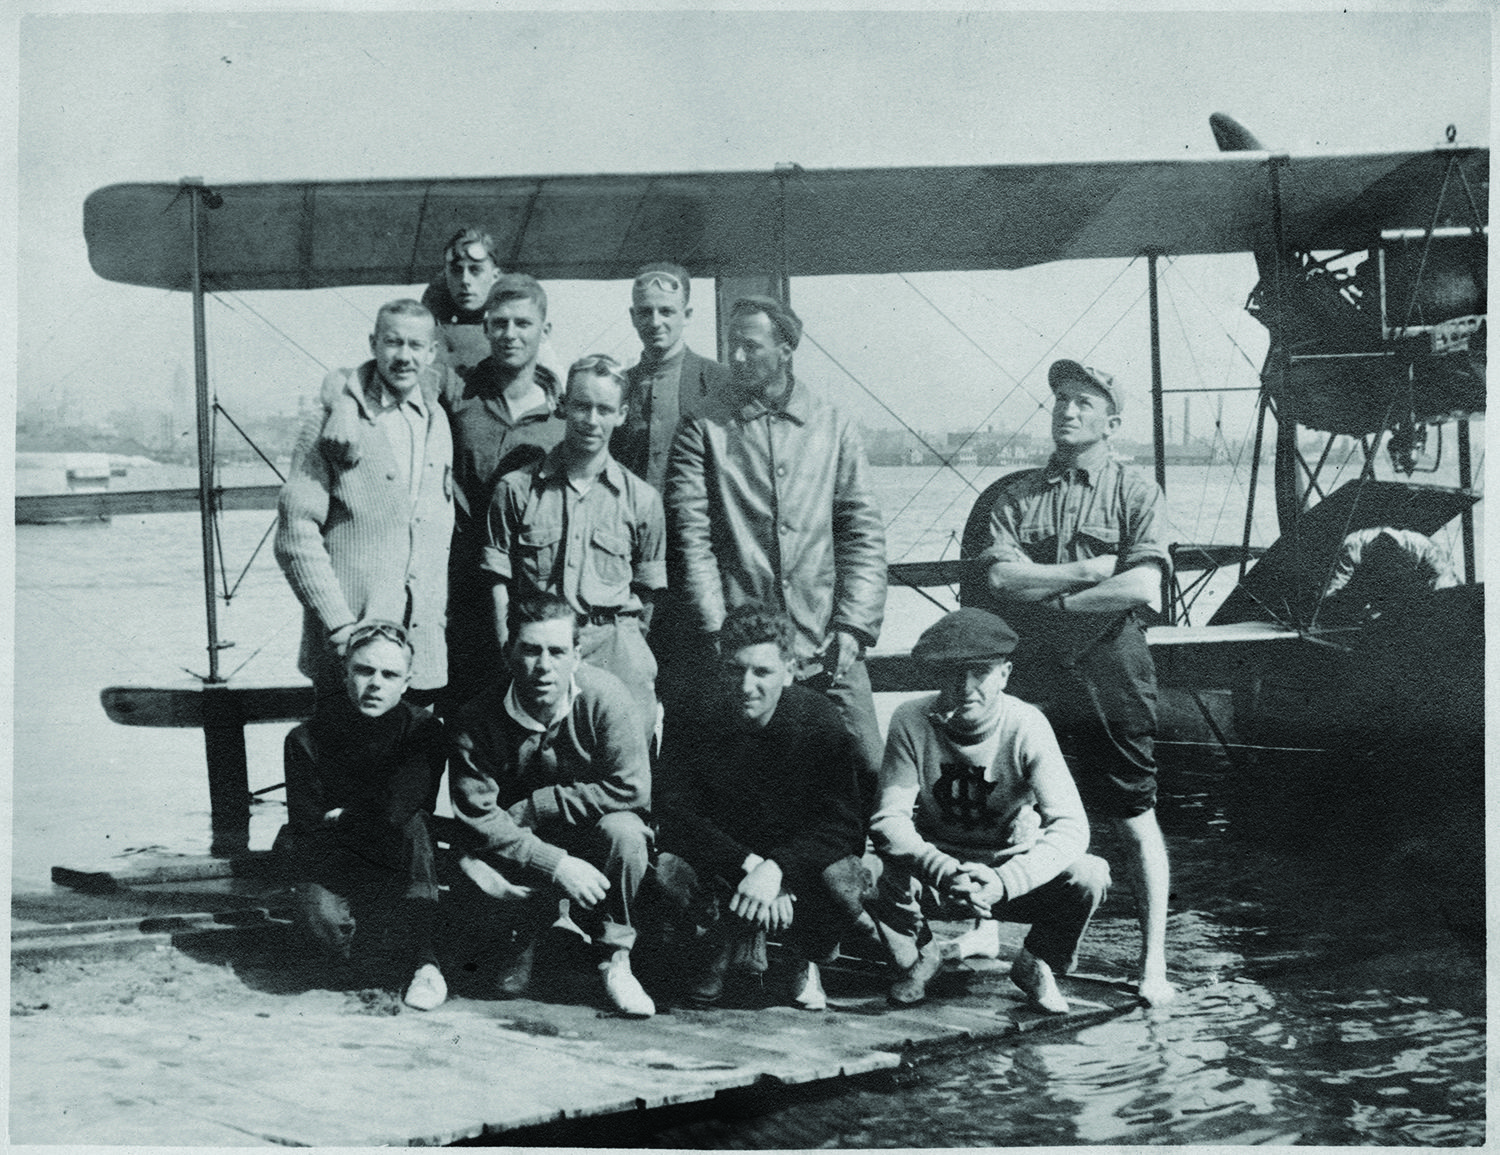 Before founding our Credit Union in 1936, Victor Vernon was a  civilian flight instructor for aviation pioneer Glenn H. Curtiss.  Vernon (looking left below) poses with some of his student pilots in front of a Curtiss F Boat type plane at the Curtiss Aviation School circa August 1915 at Toronto Island in Toronto, Canada. Photo courtesy of the Smithsonian National Air and Space Museum.